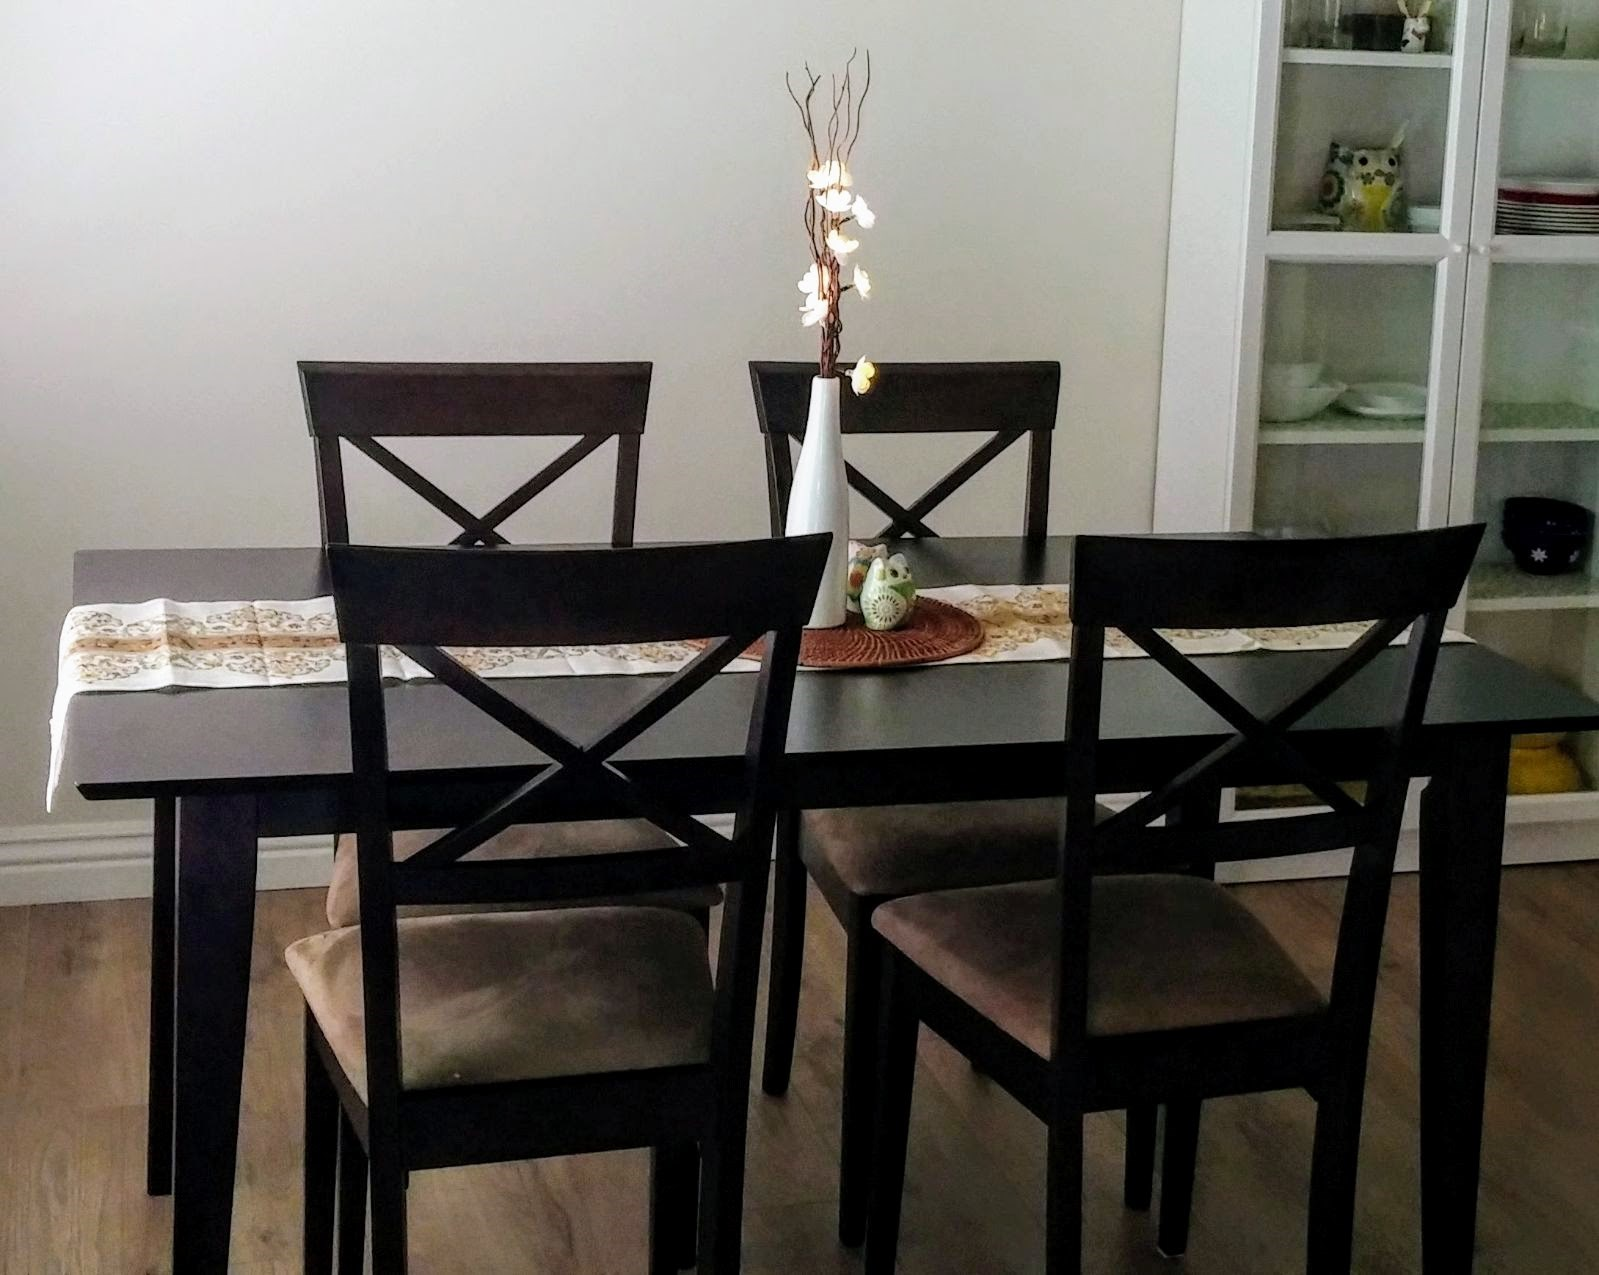 buy sell used furniture home decor electronic appliances solid wood dining table with 4 chairs